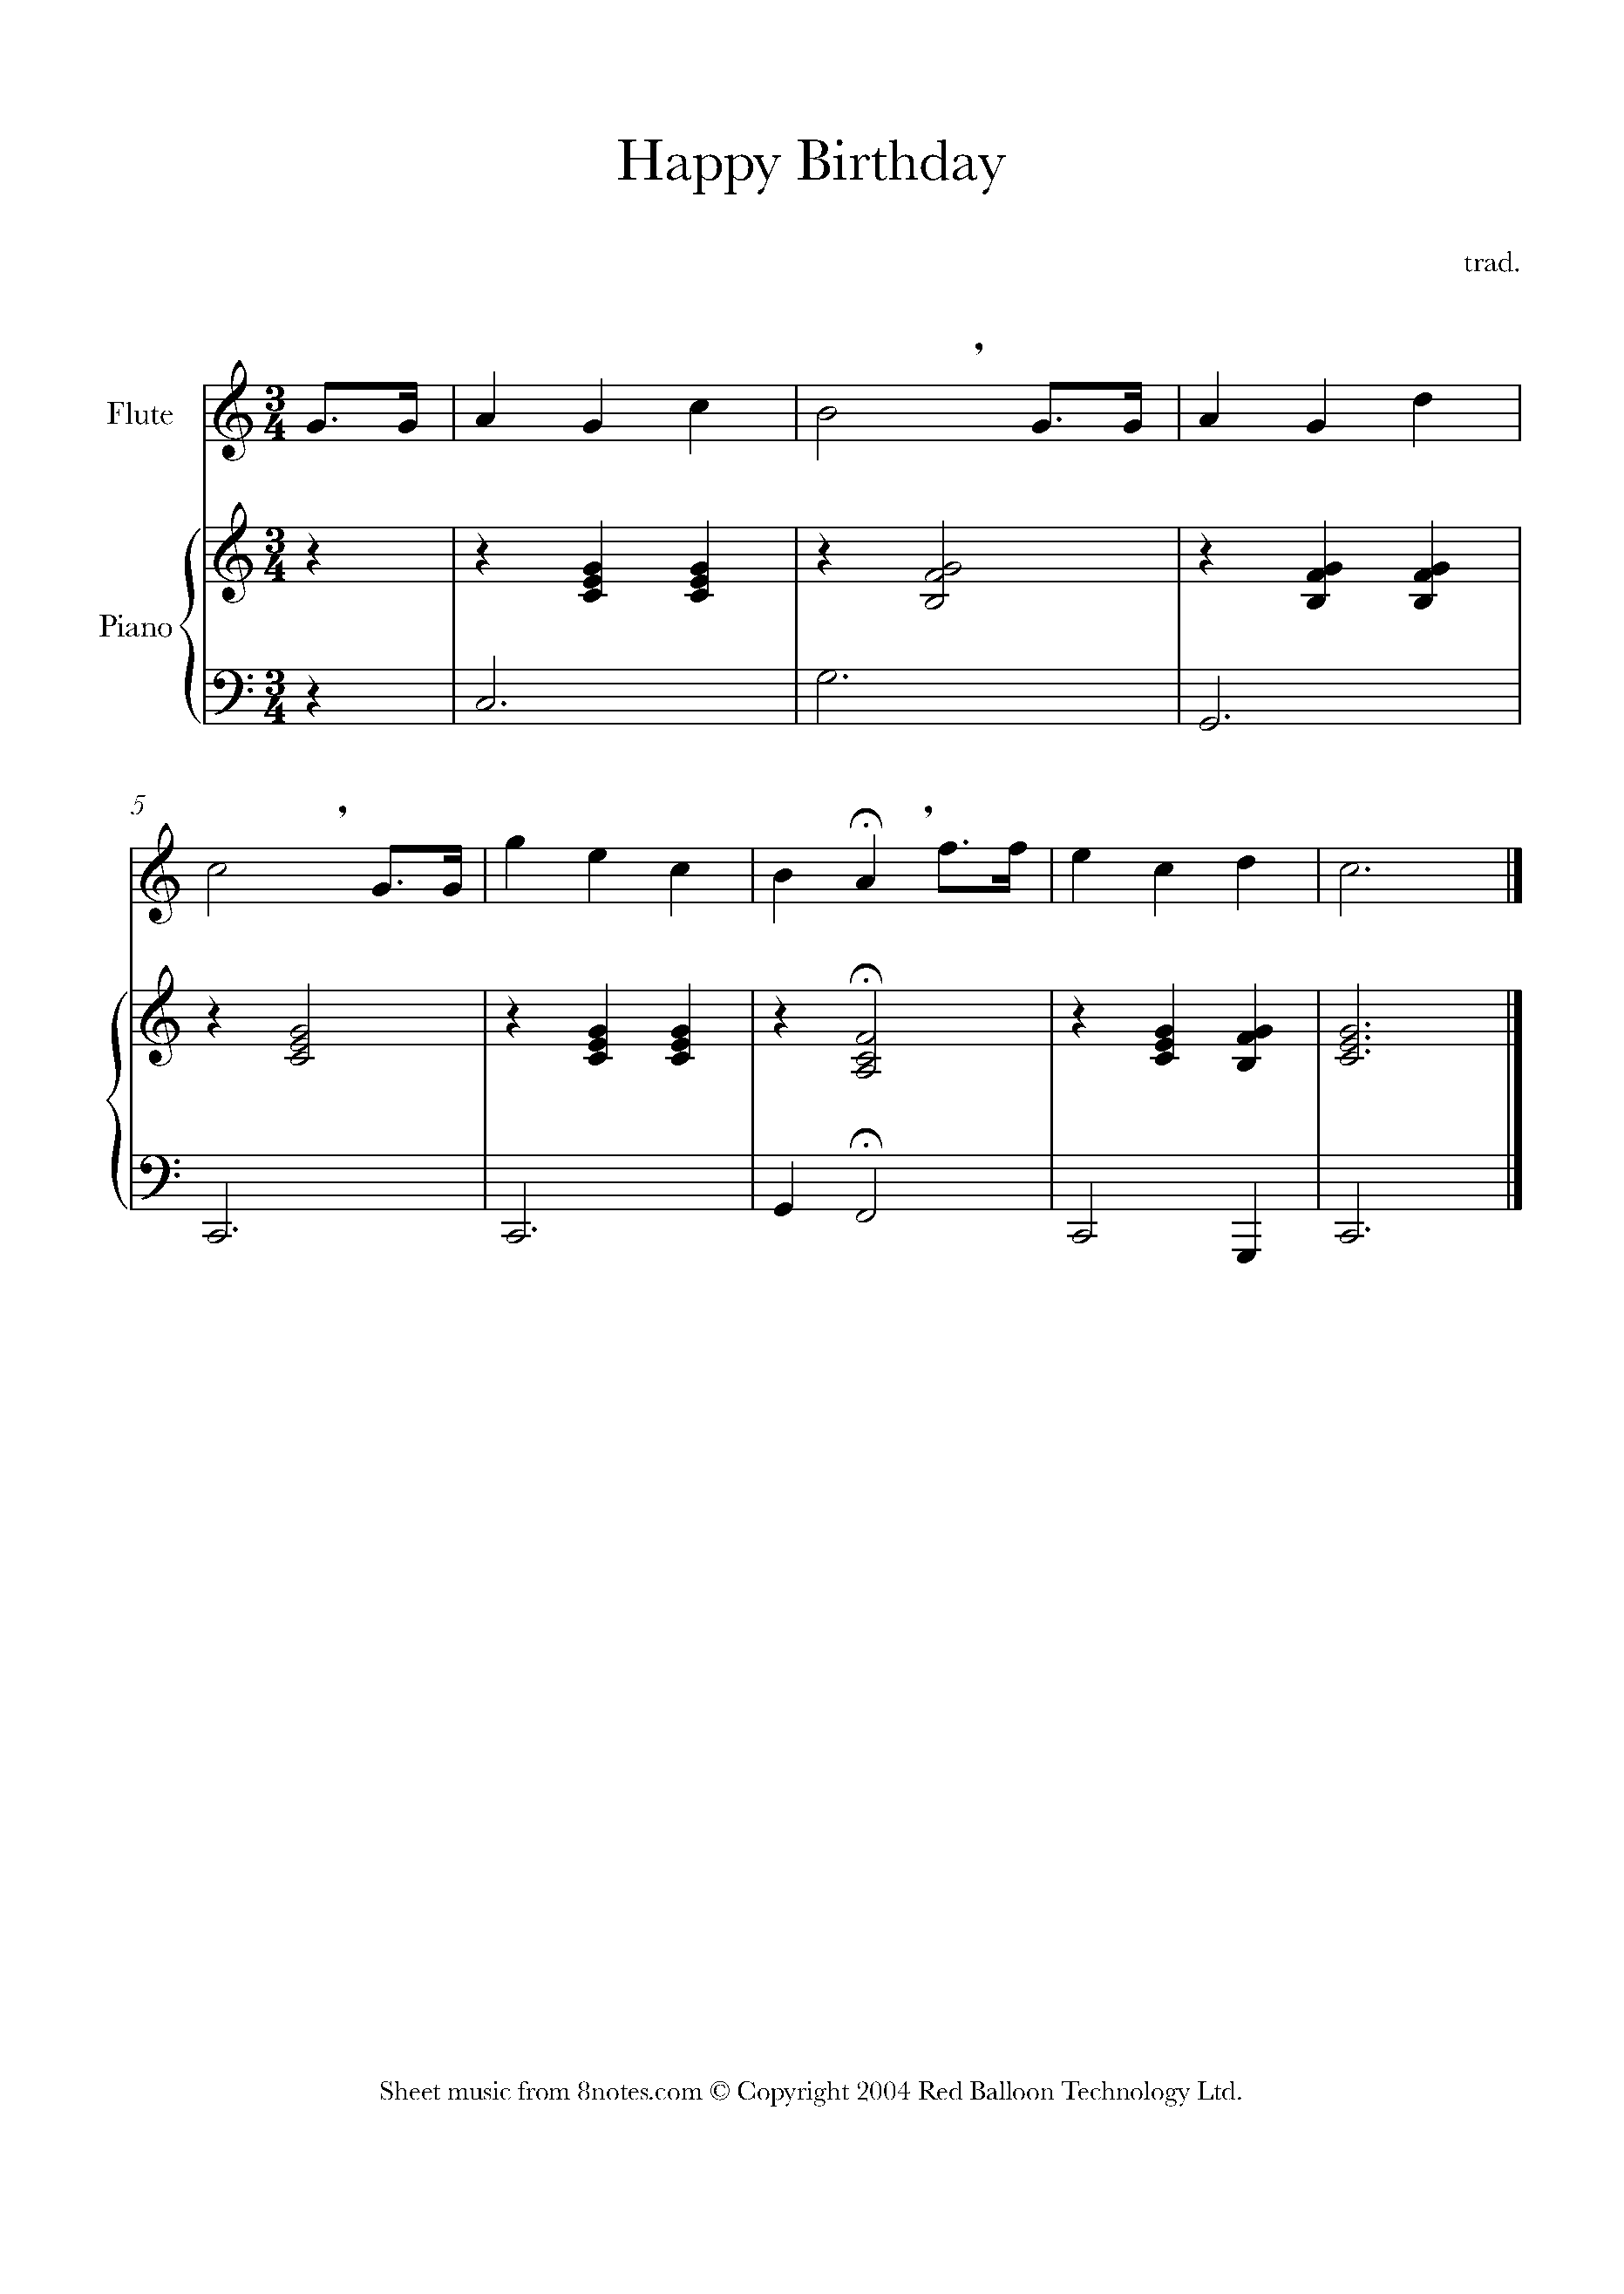 Happy Birthday Sheet Music For Flute 8notes Com